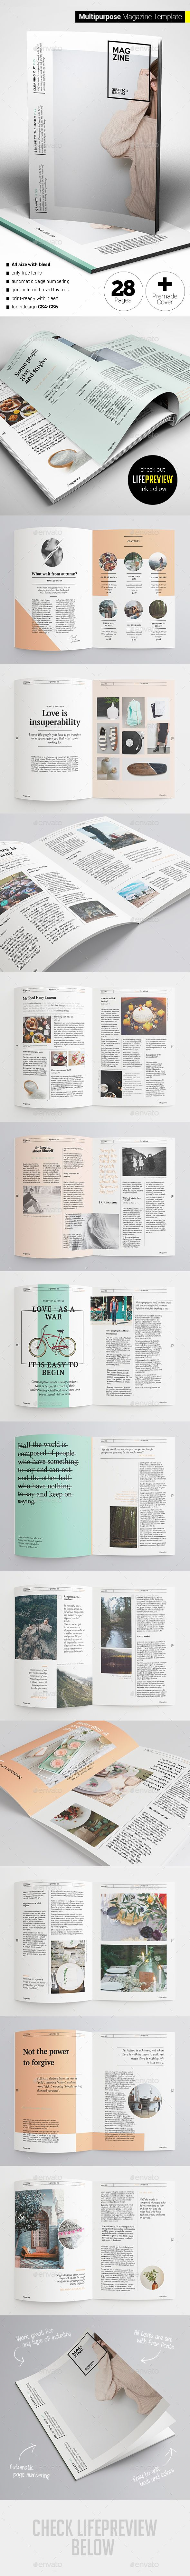 Multipurpose Magazine 28 Pages Template InDesign INDD #design Download: http://graphicriver.net/item/multipurpose-magazine/13107062?ref=ksioks